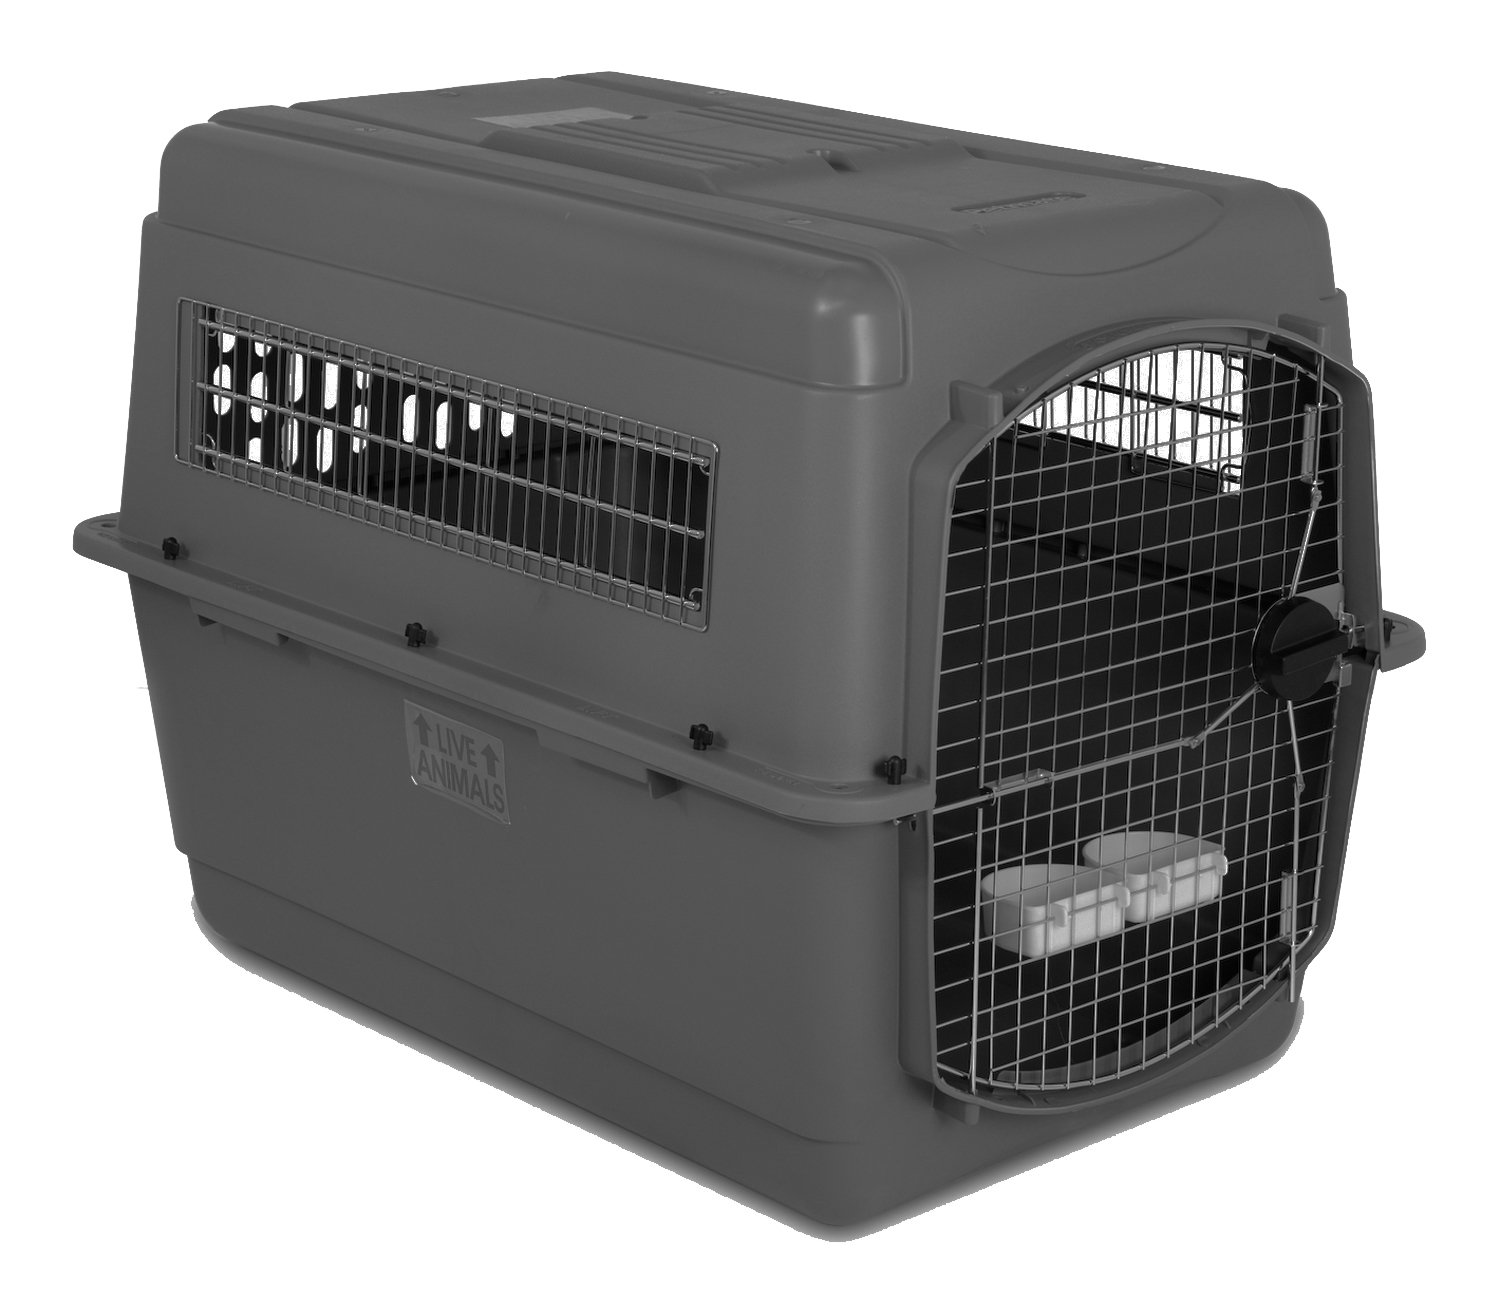 amazoncom petmate sky kennel for pets from 70 to 90pound light gray pet carrier extra large pet supplies